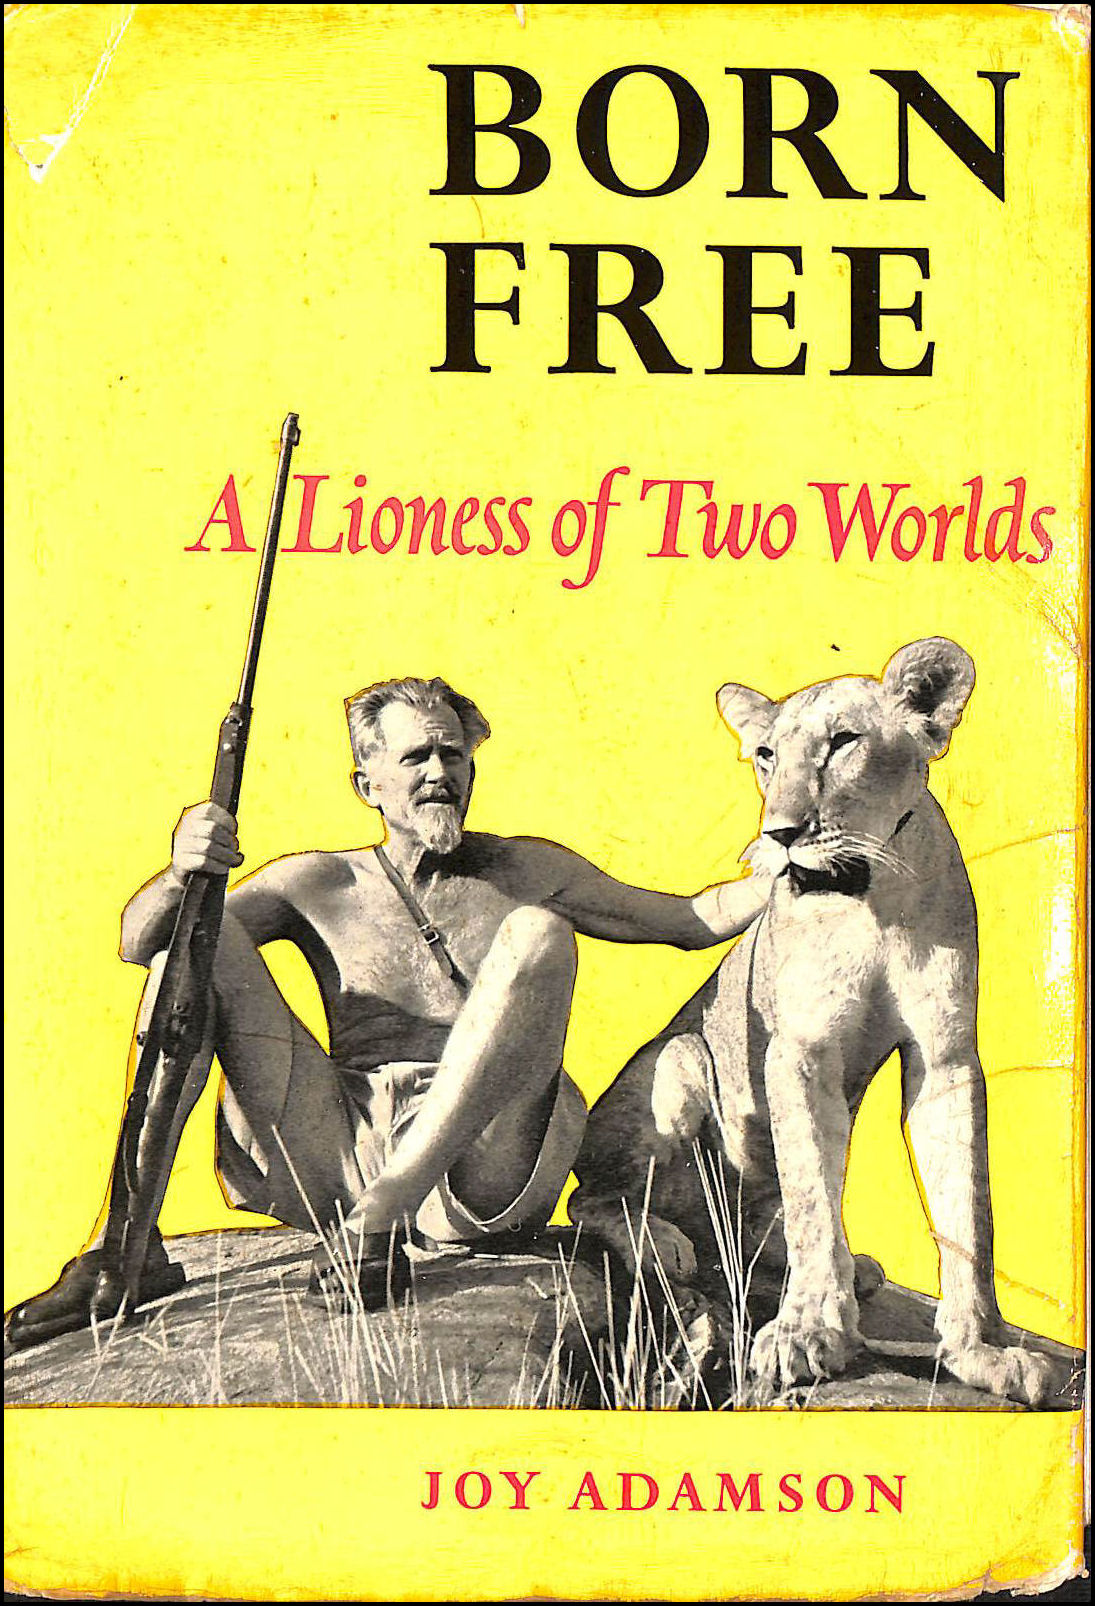 Born Free. A Lioness of Two Worlds, Joy Adamson